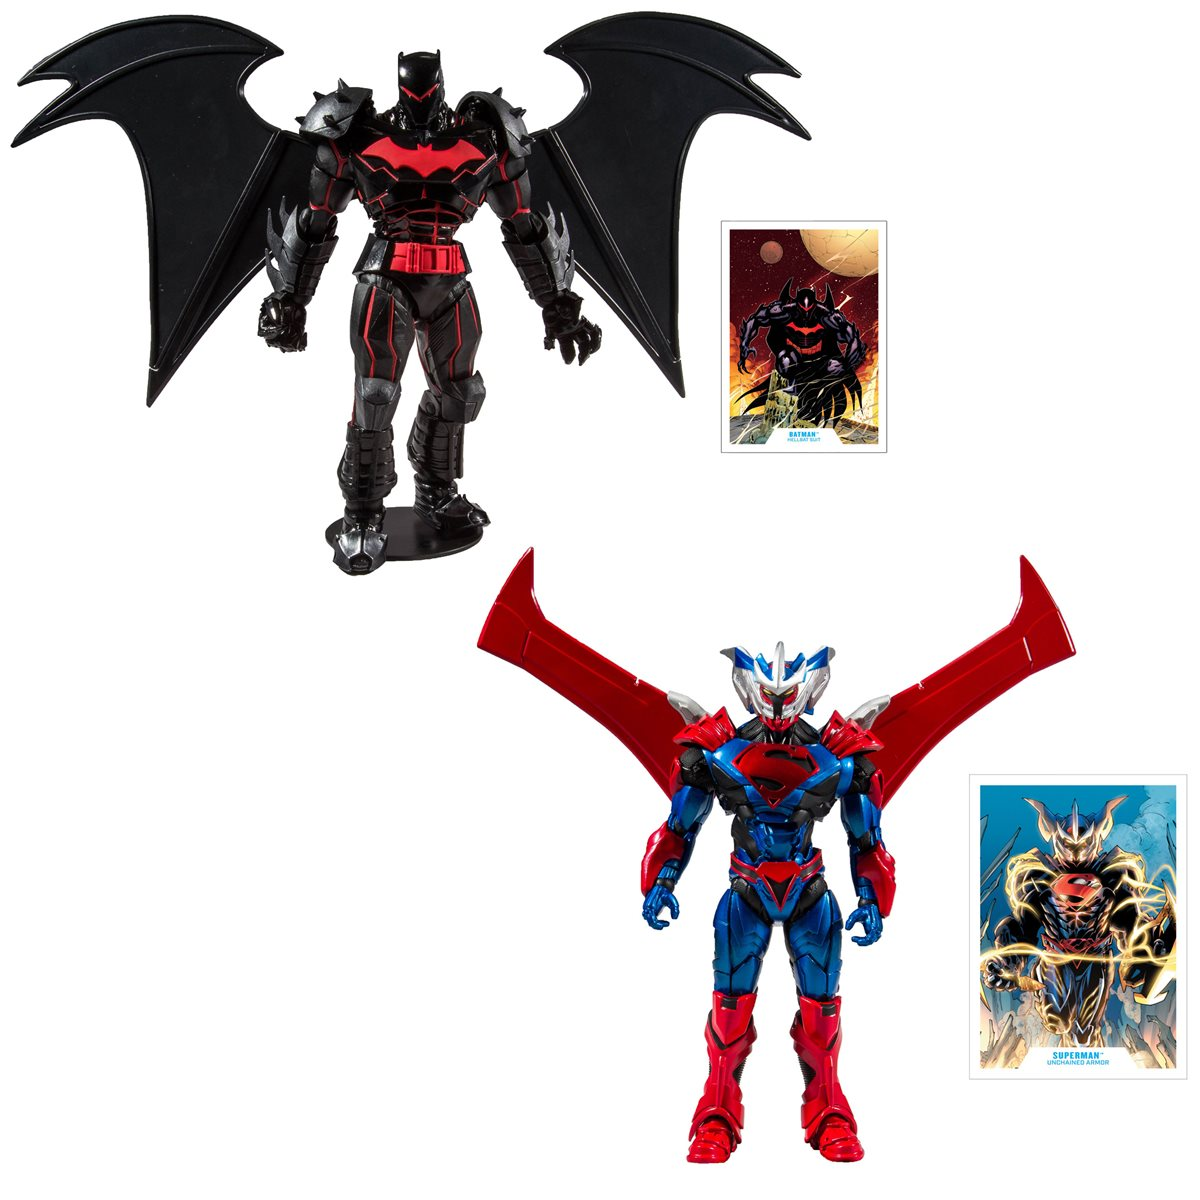 DC Armored Wave 1 7-Inch Action Figure